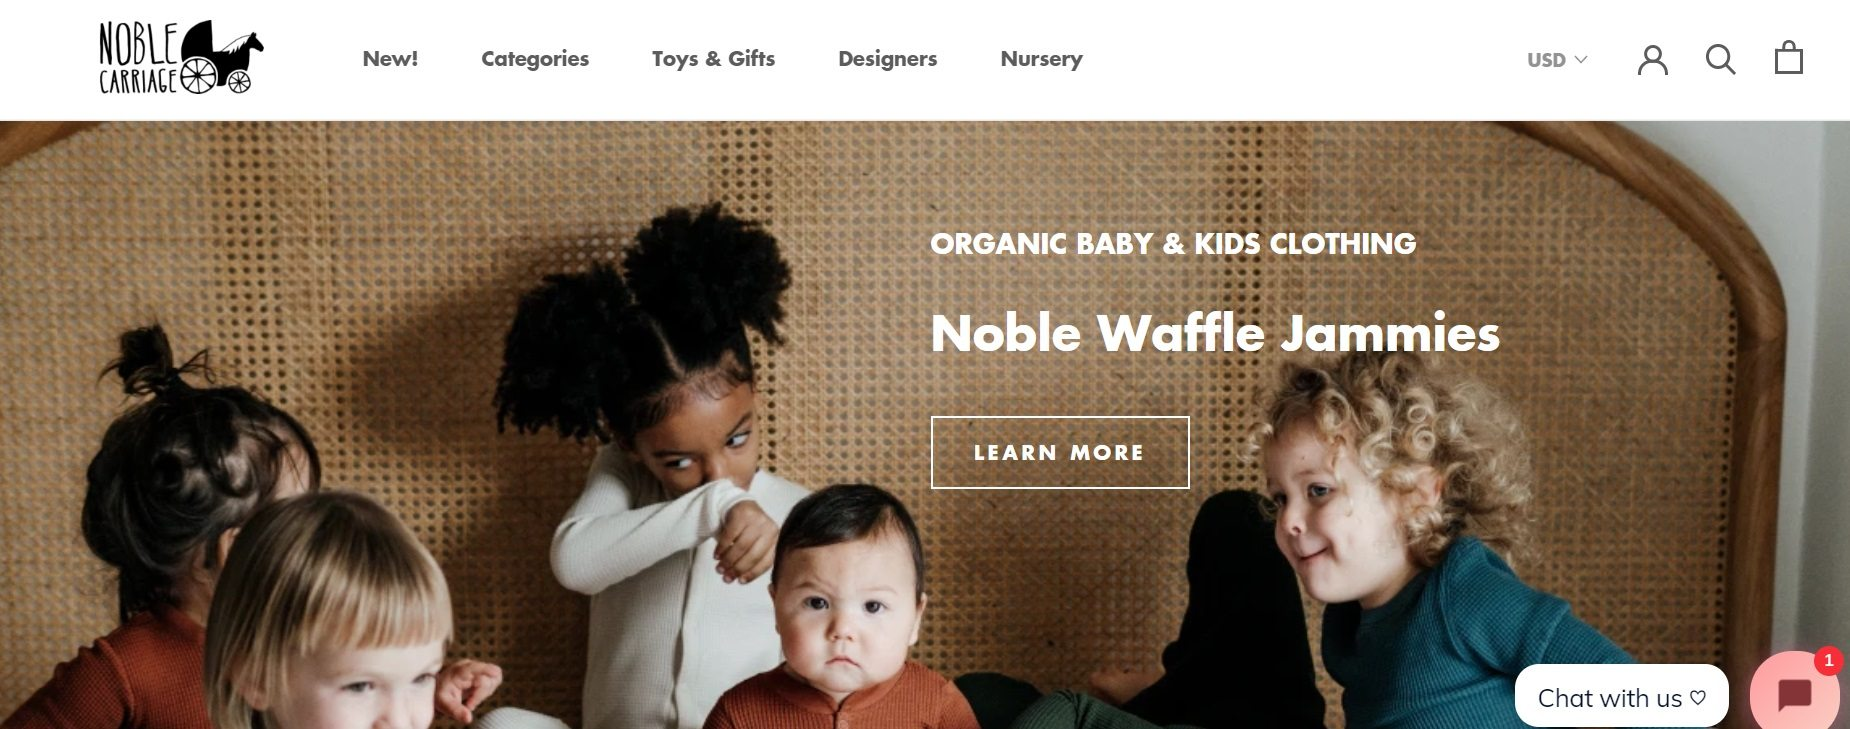 Noble Carriage Organic Baby & Kids Clothing